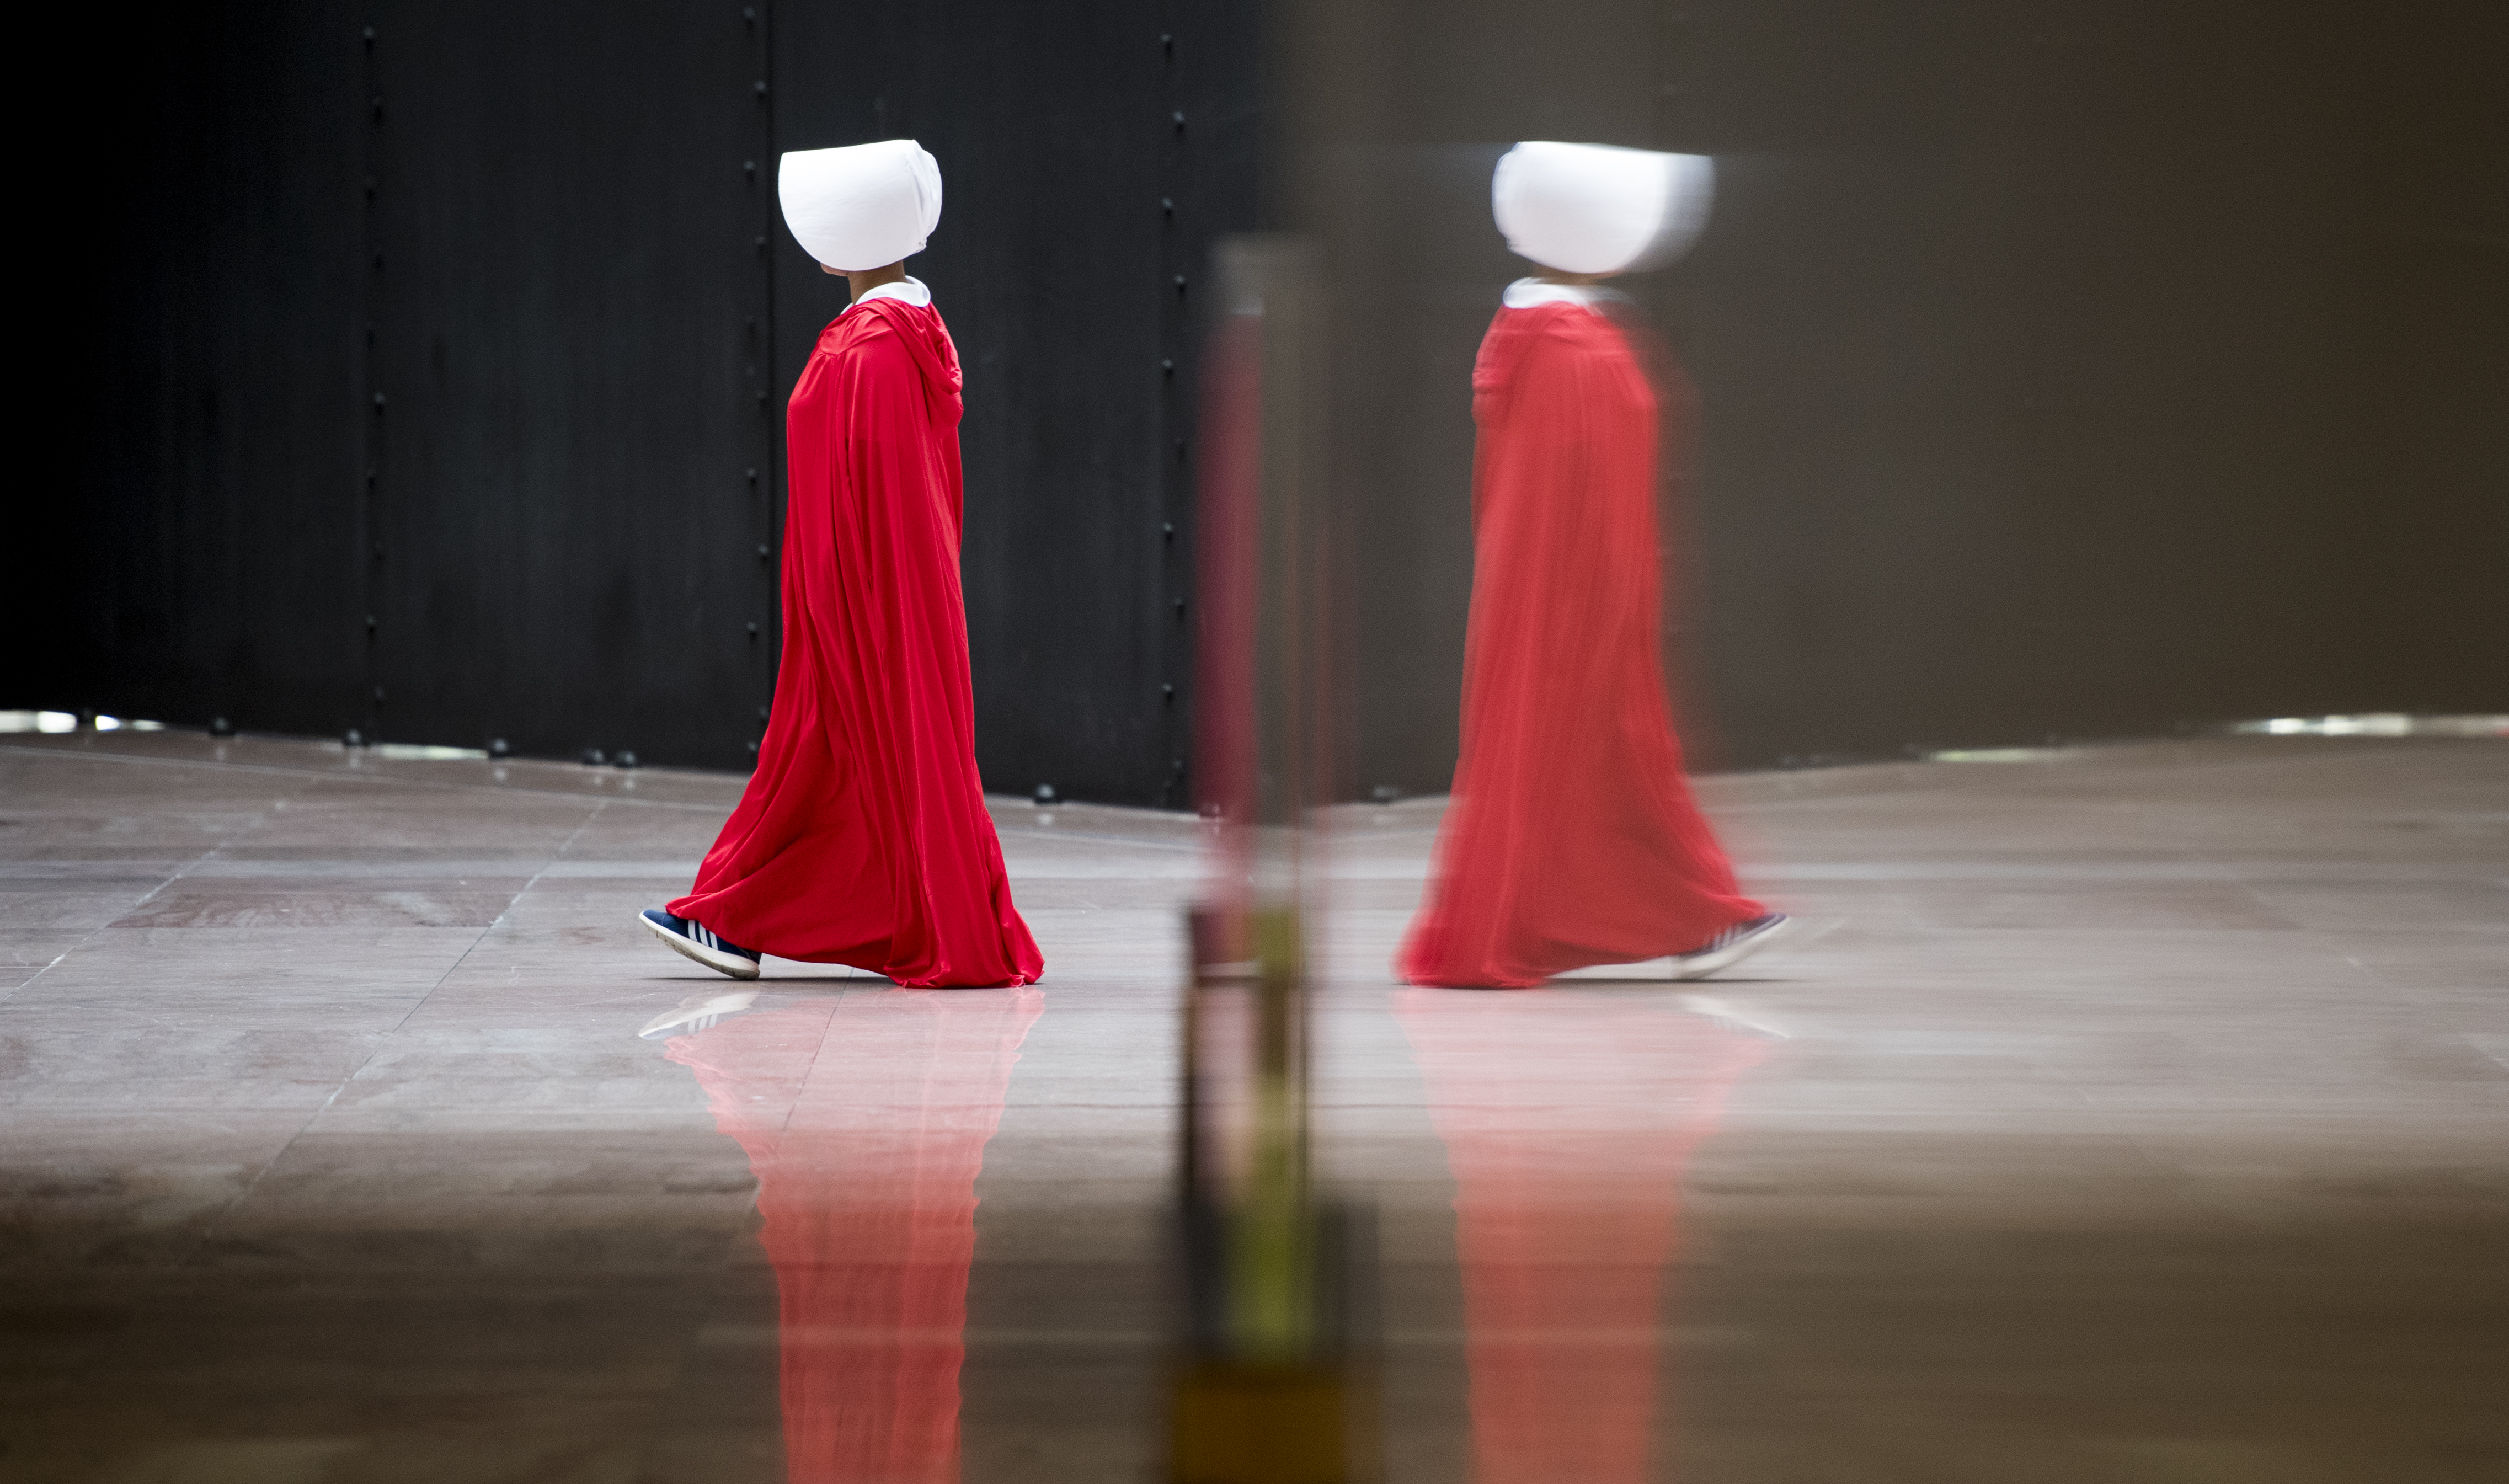 SEPT. 4: One of a dozen protesters dressed in The Handmaid's Tale costumes walks in a circle in the atrium of the Hart Senate Office Building during the confirmation hearing of Brett Kavanaugh